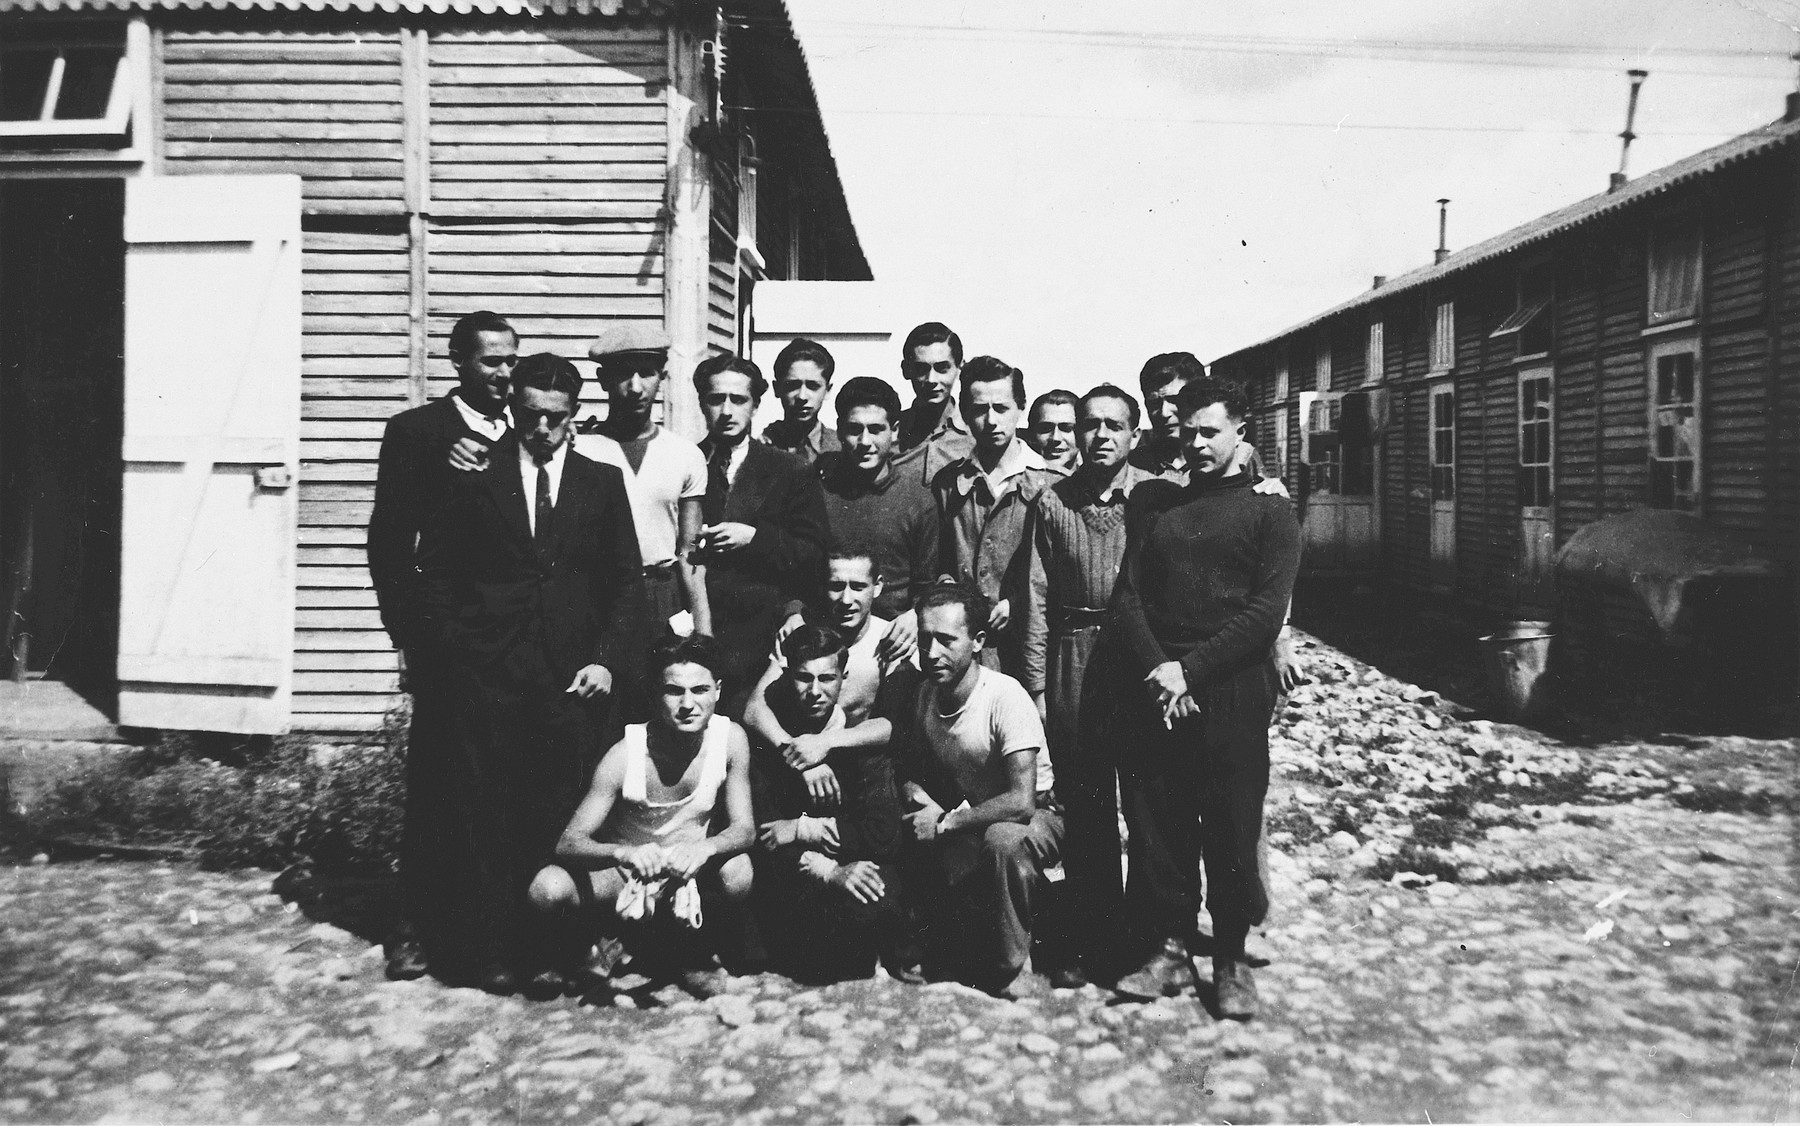 Group portrait of prisoners from barracks #13 in the Beaune-la-Rolande internment camp.